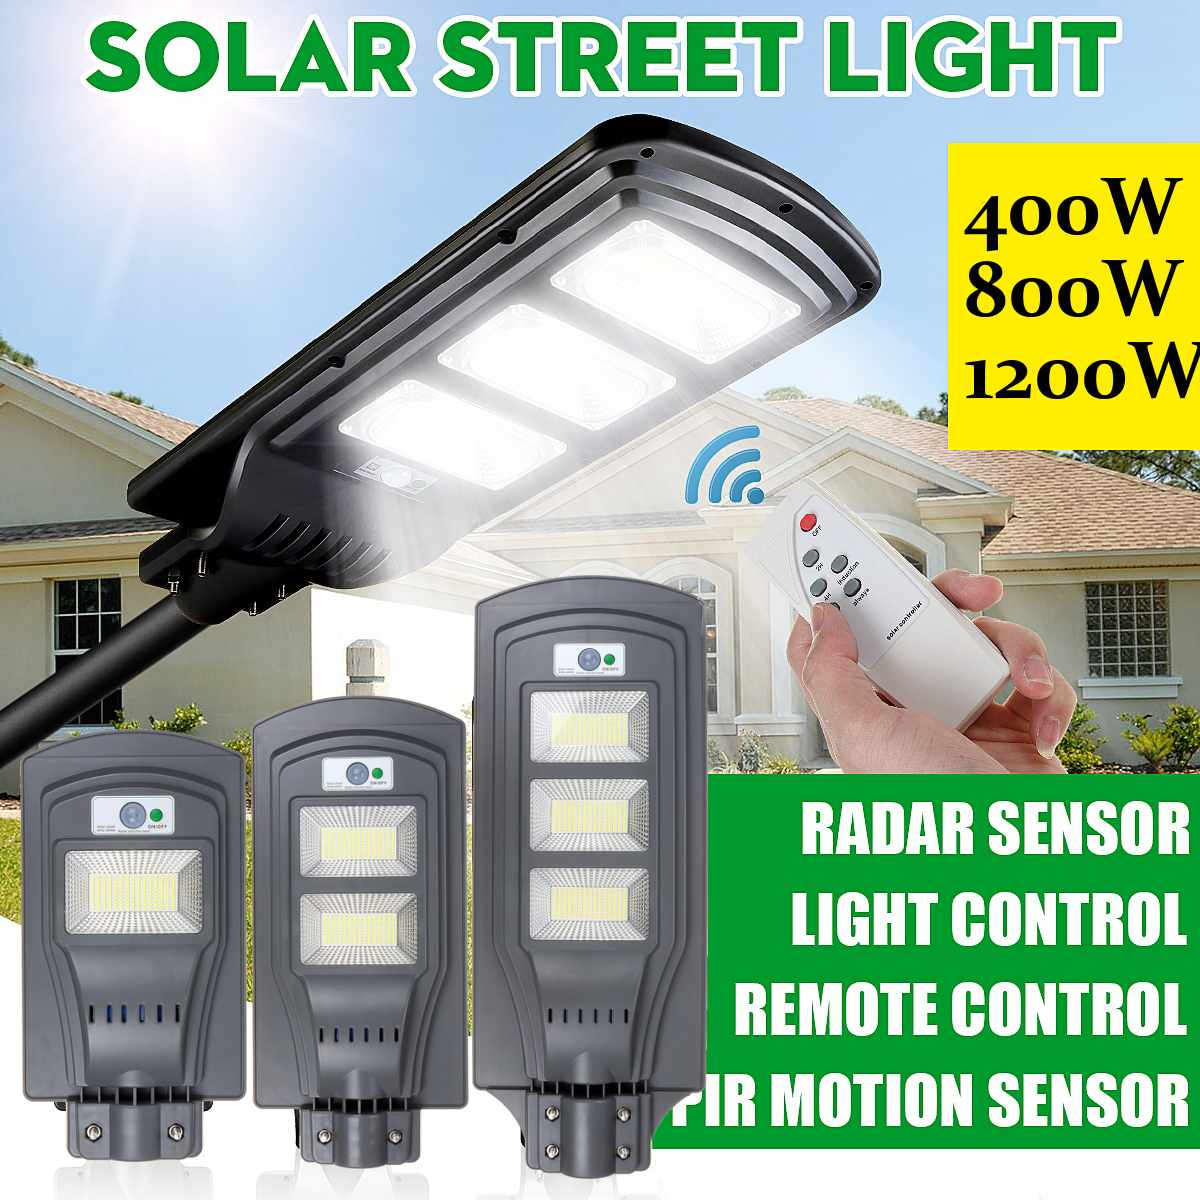 400W 800W 1200W LED Solar Street Light Remote Control PIR Motion Sensor Waterproof IP65 Outdoor Lighting Garden Road Wall Lamp